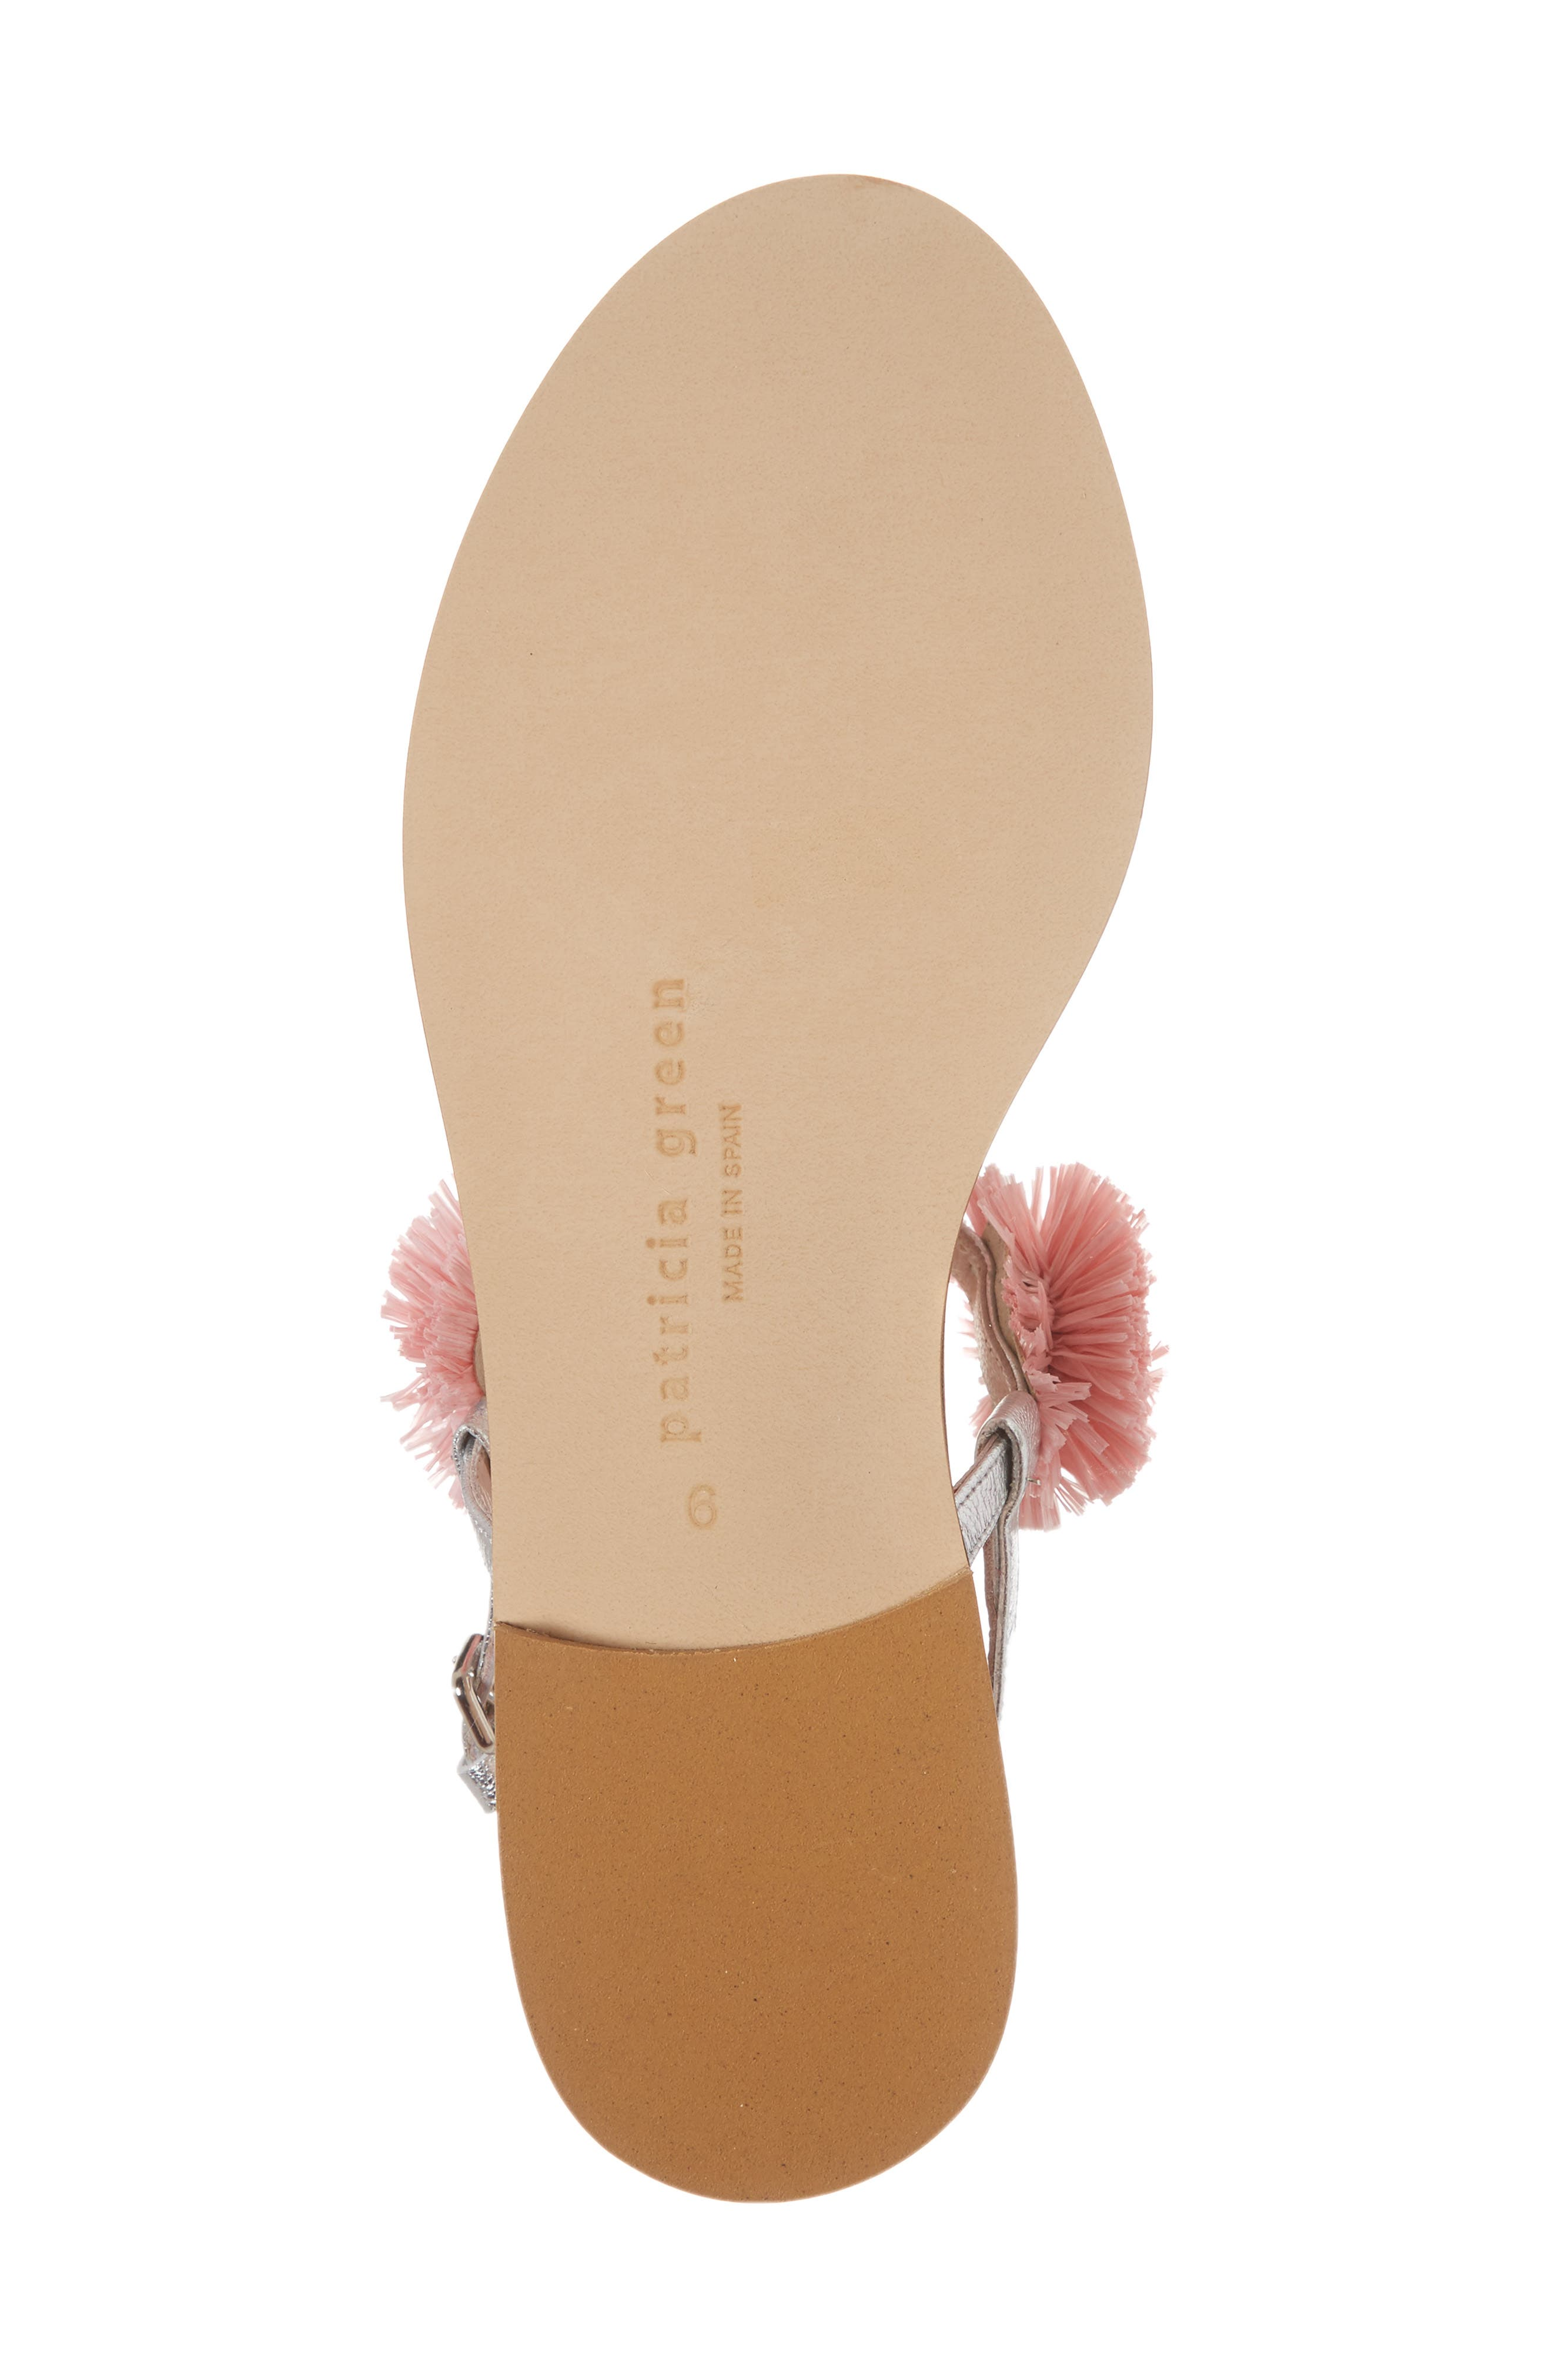 Pompom Thong Sandal,                             Alternate thumbnail 6, color,                             PINK LEATHER